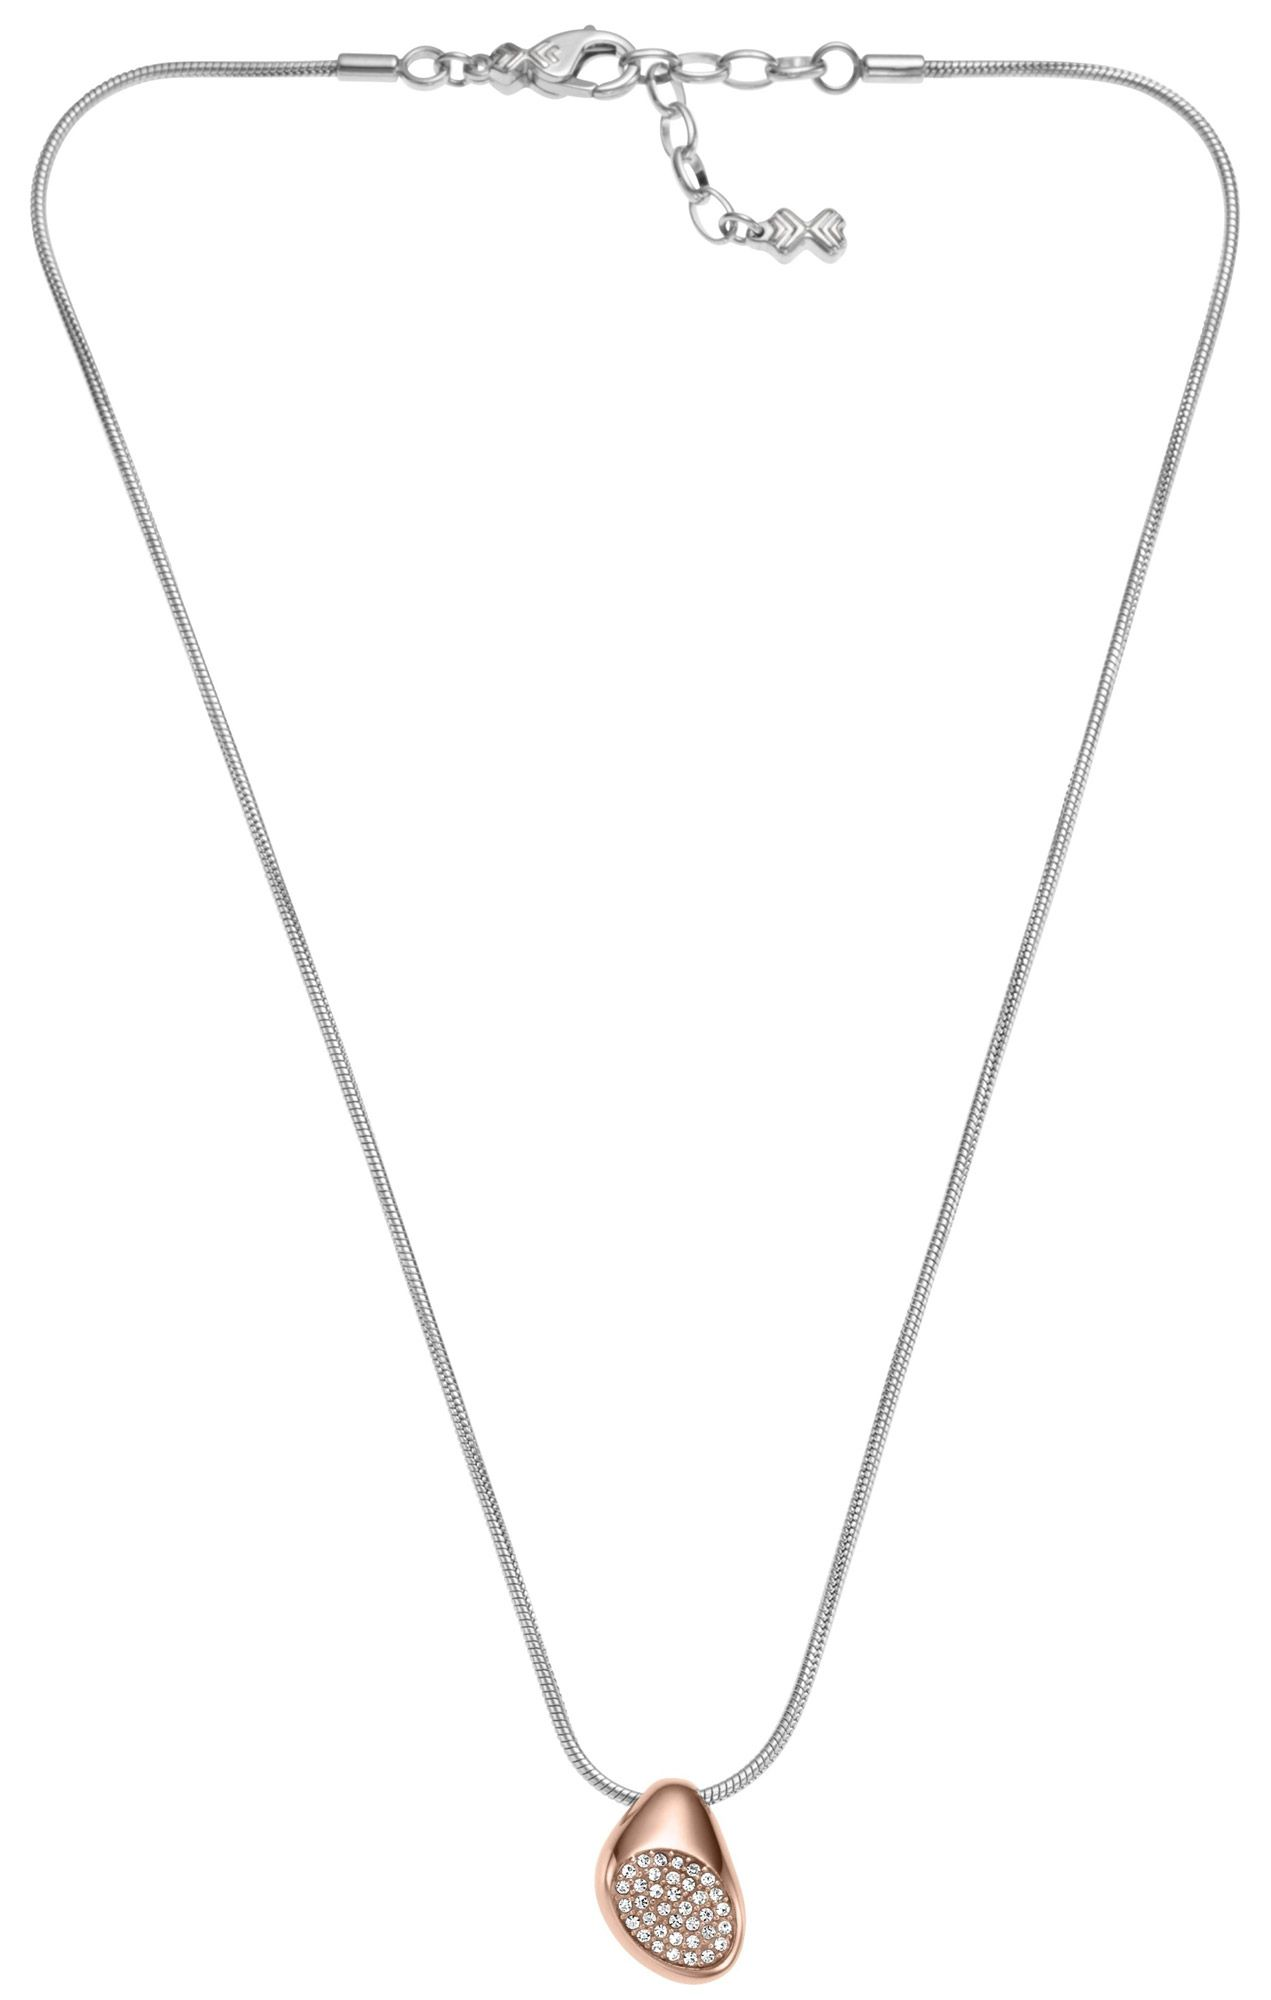 Buy Skagen SKJ0416 Sofie Ladies Necklace now from uhrcenter Jewellery Shop. ✓Official Skagen Stockist!